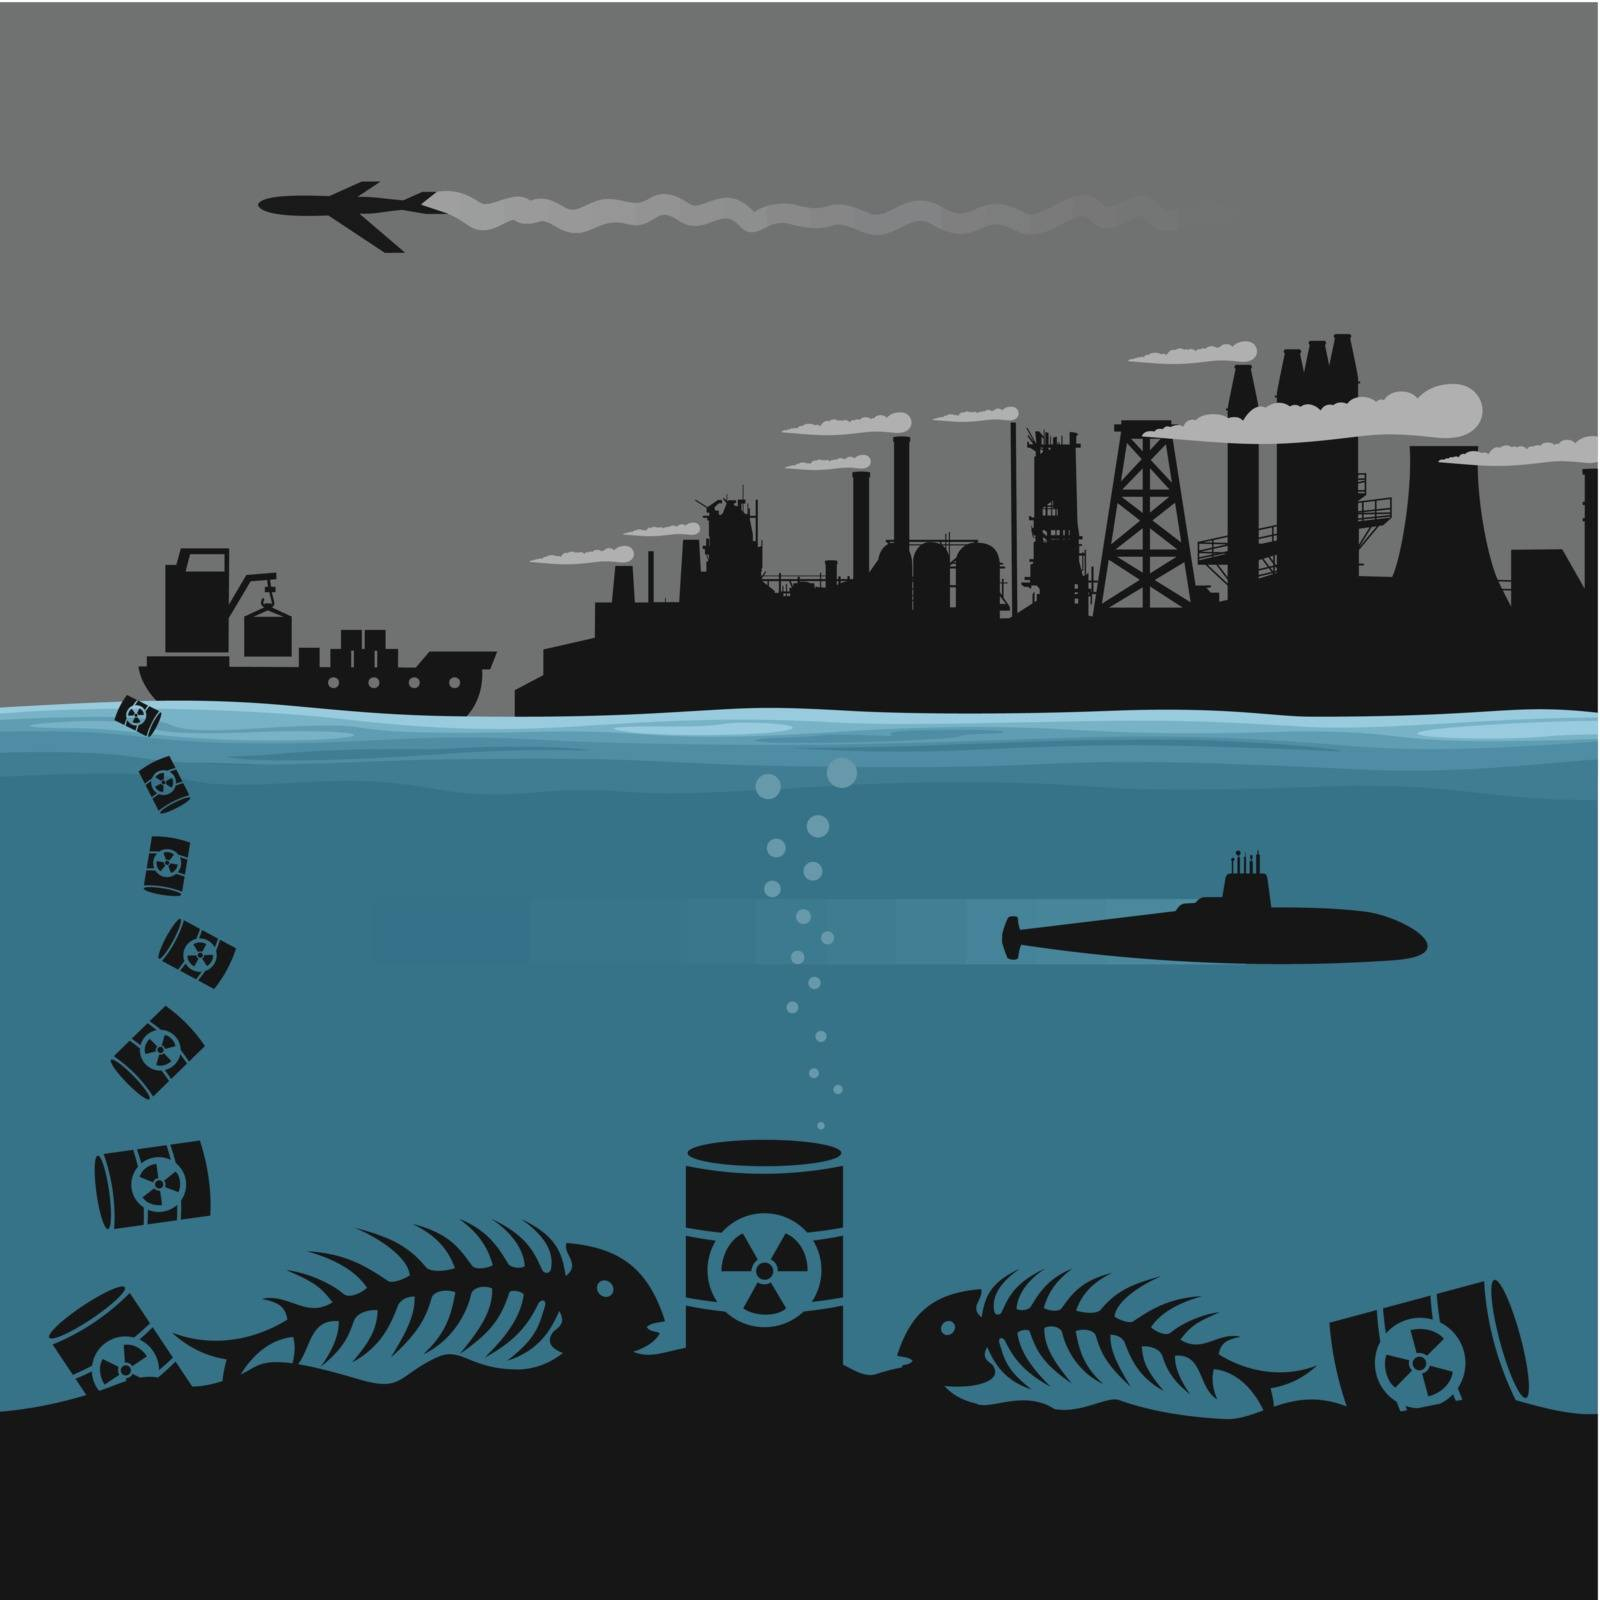 The industry pollutes ecology. A vector illustration